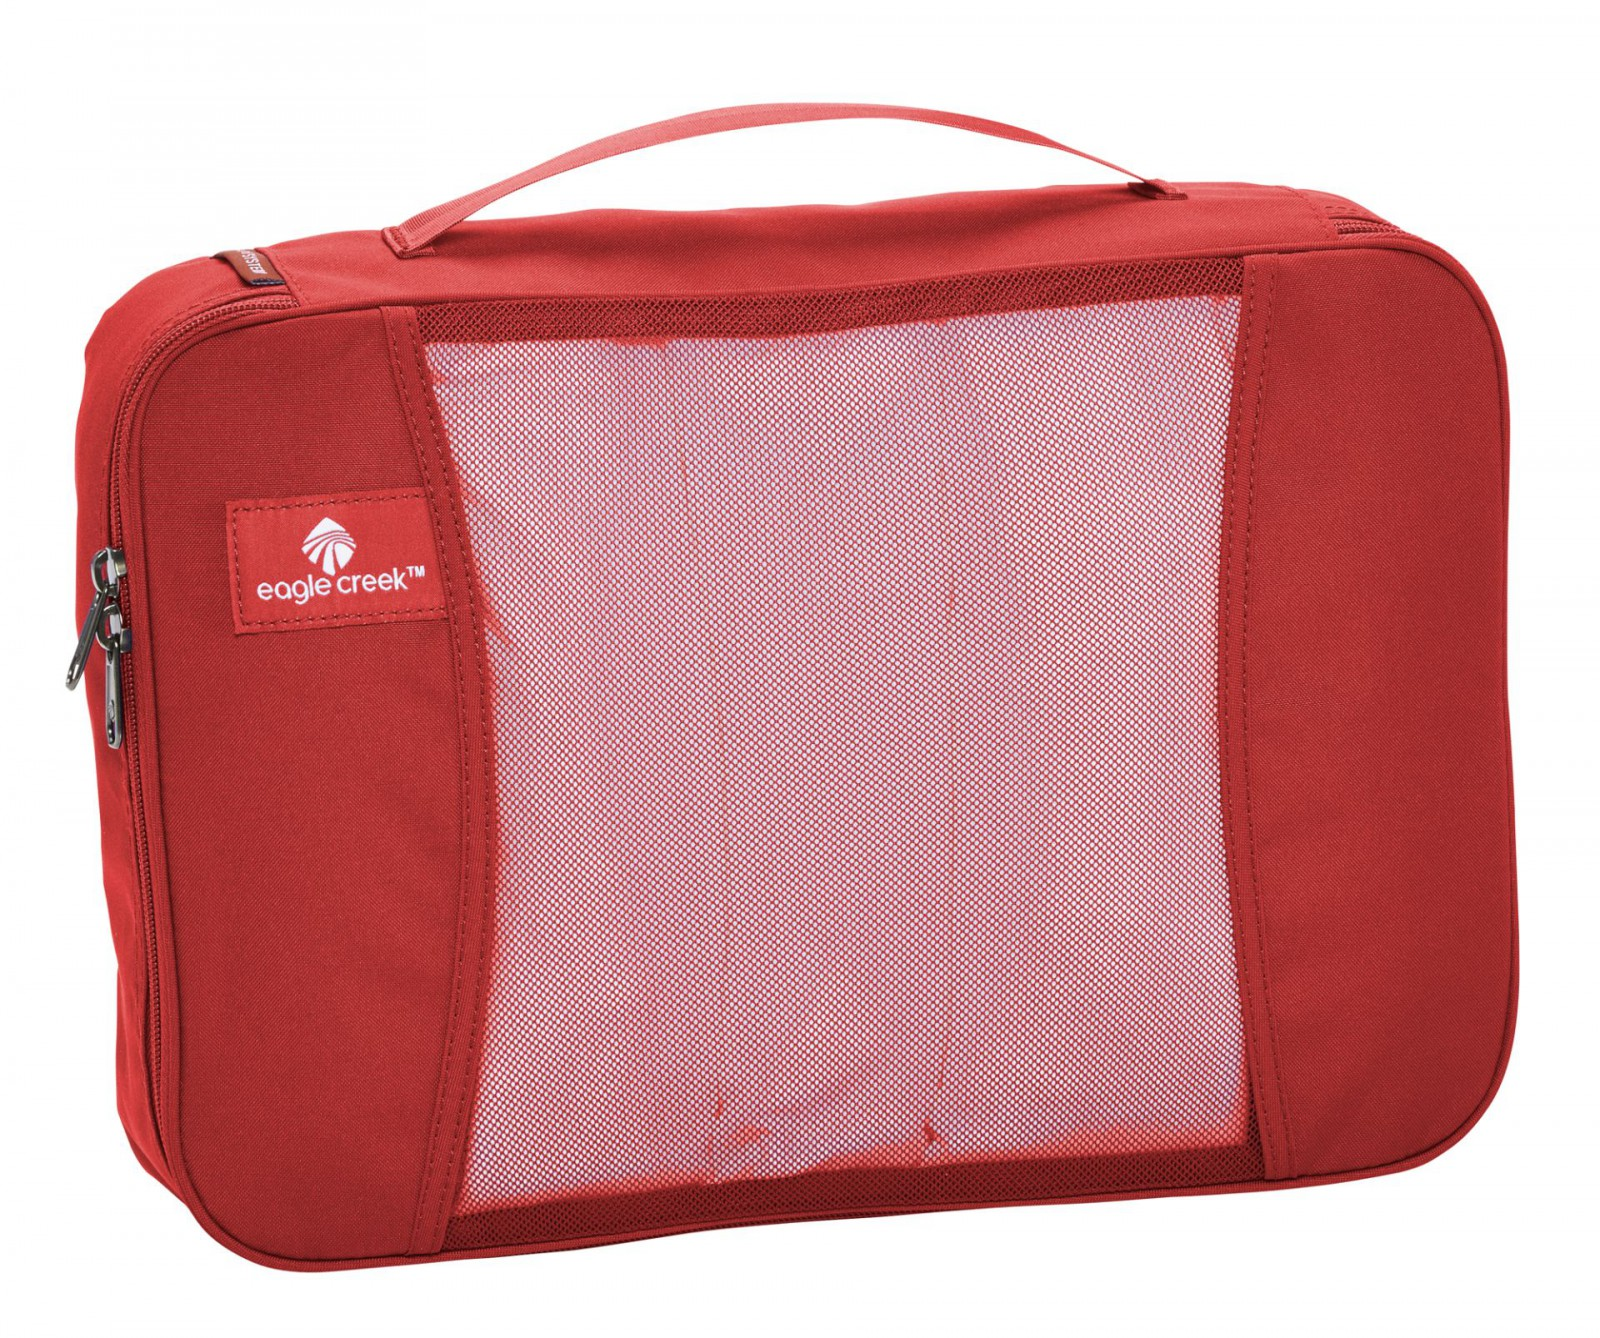 eagle creek Pack-It Cube Red Fire